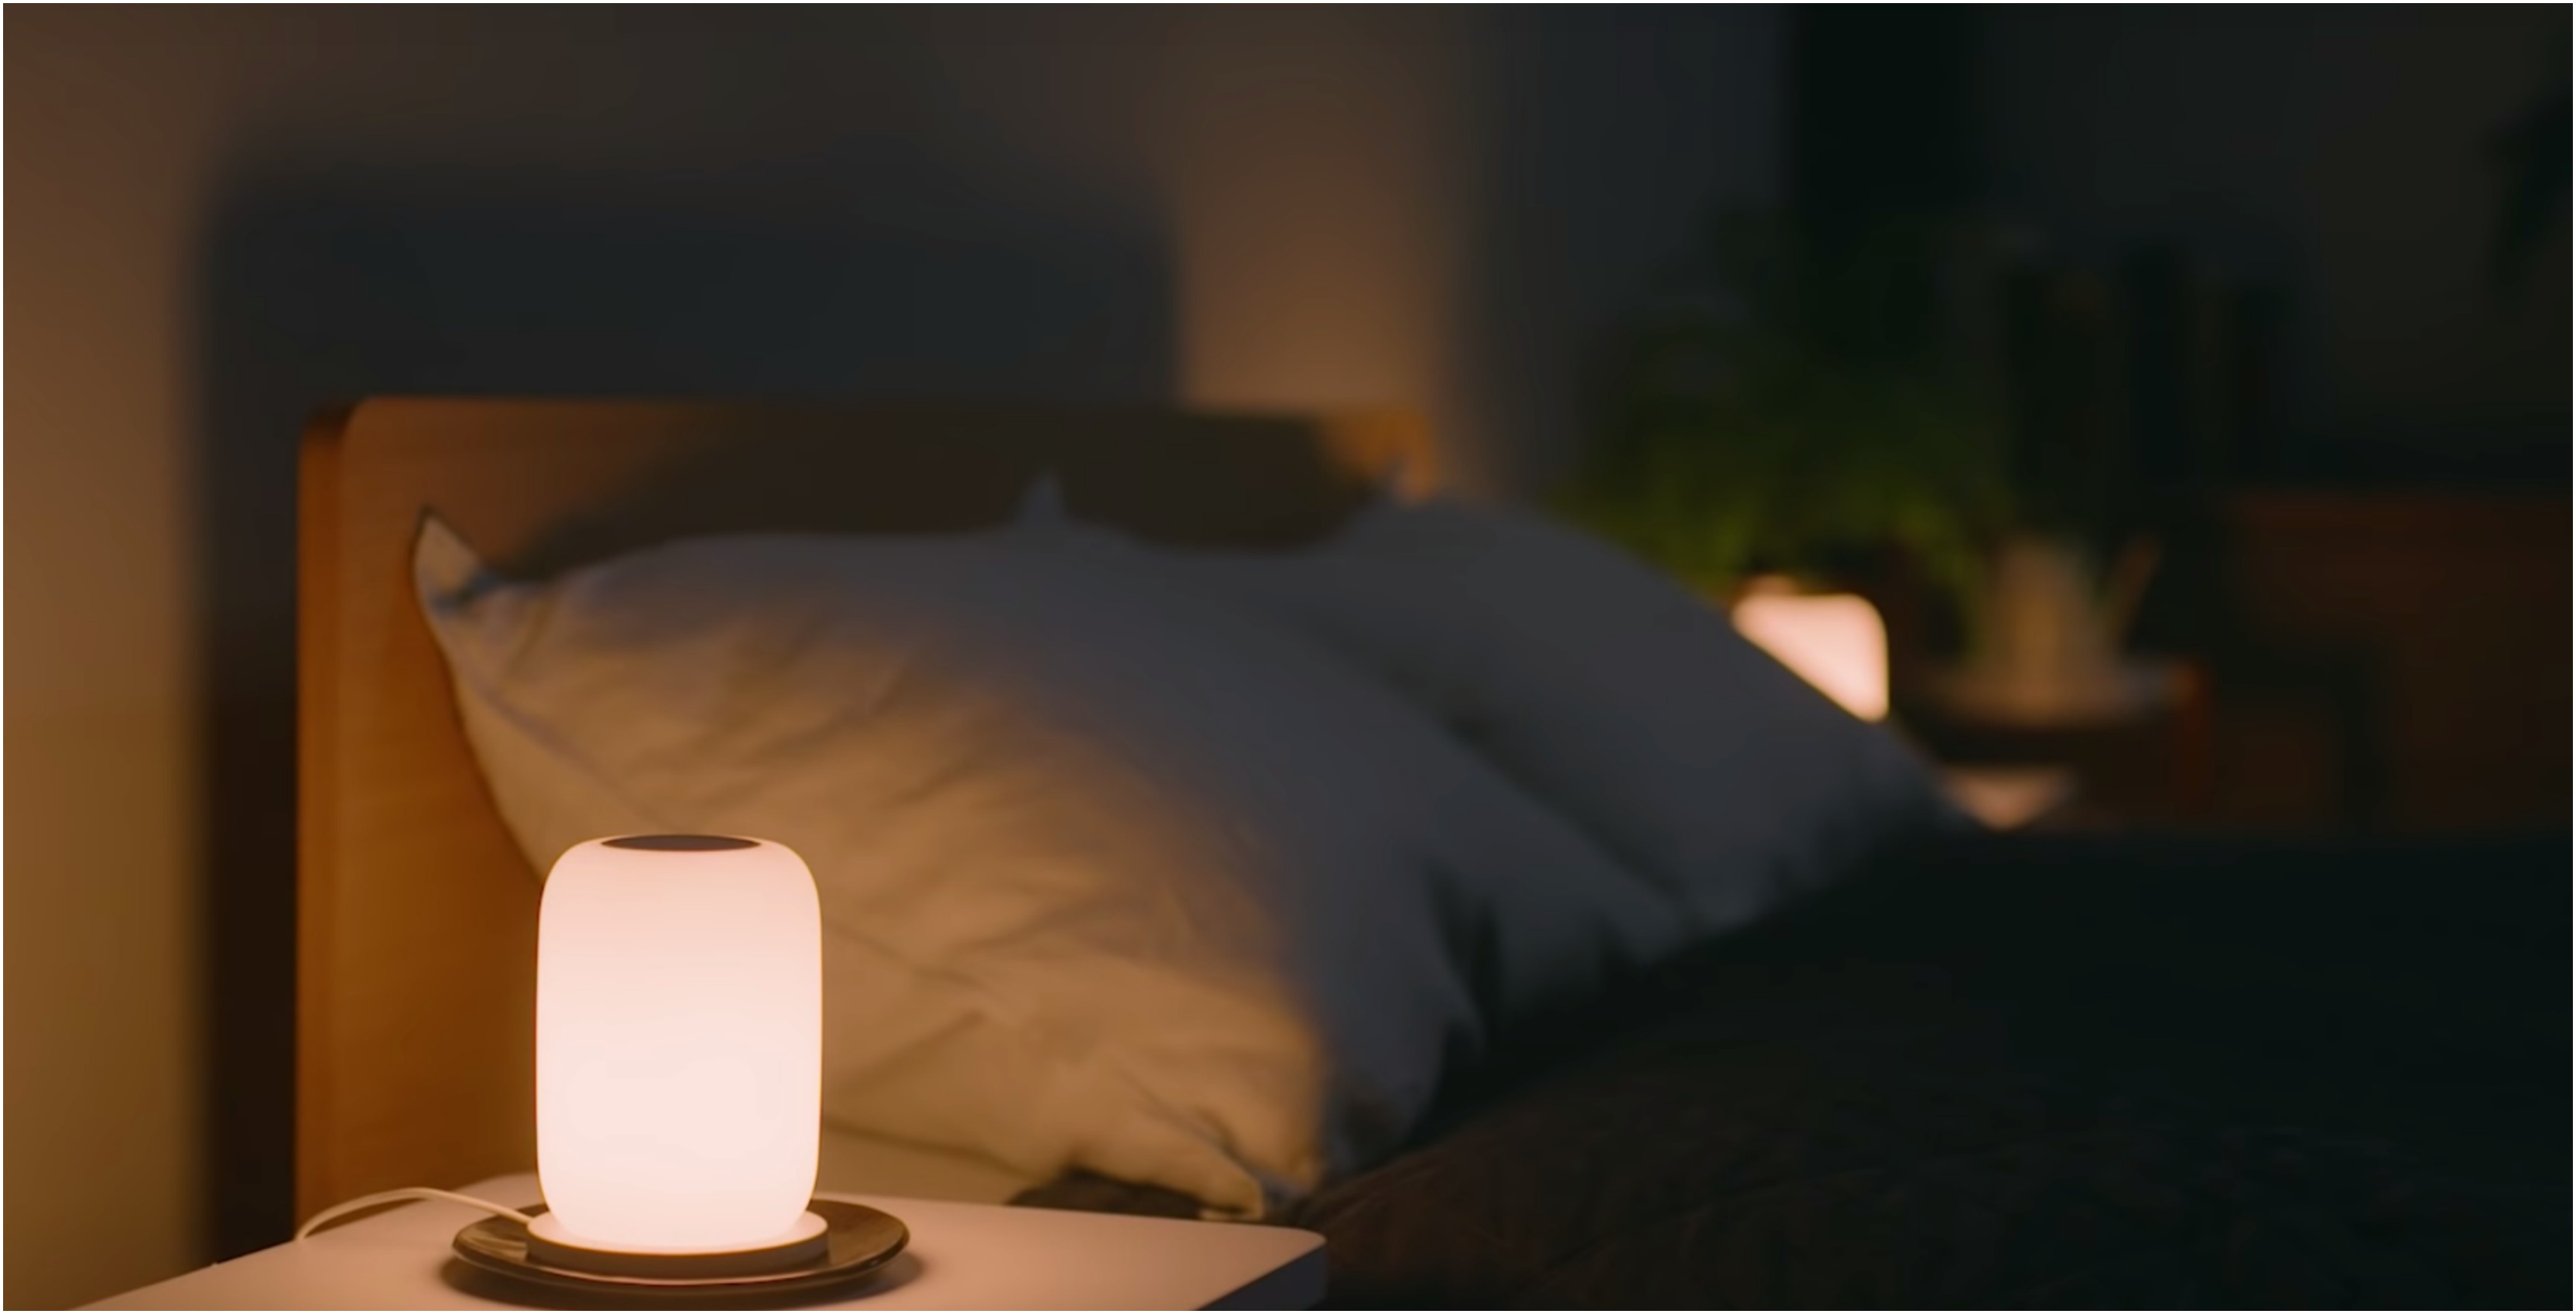 Best Night Light Reviews by www.snoremagazine.com